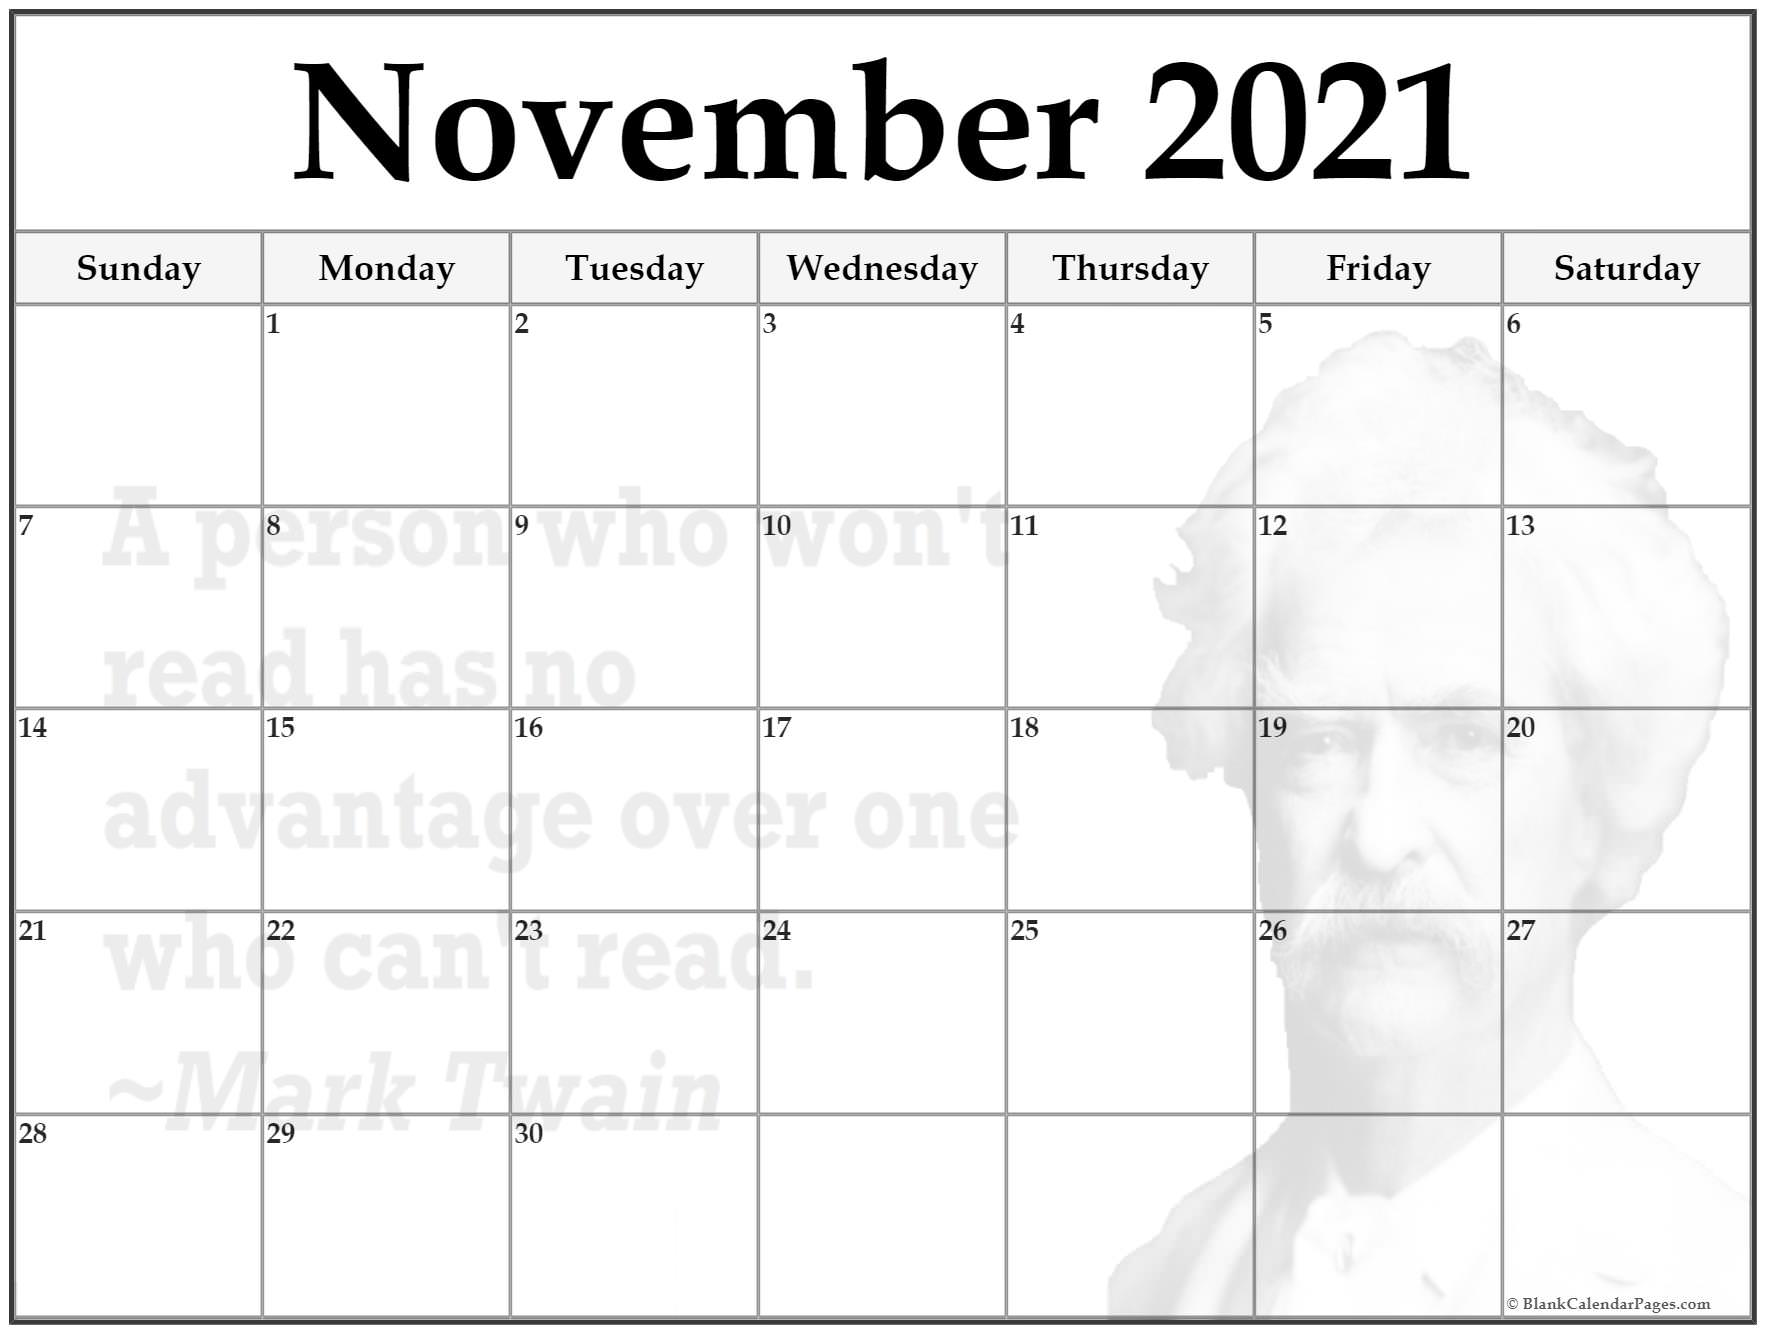 November 2019 printable quote calendar template. A person who won't read has no advantage over a person who can't read. ~Mark Twain